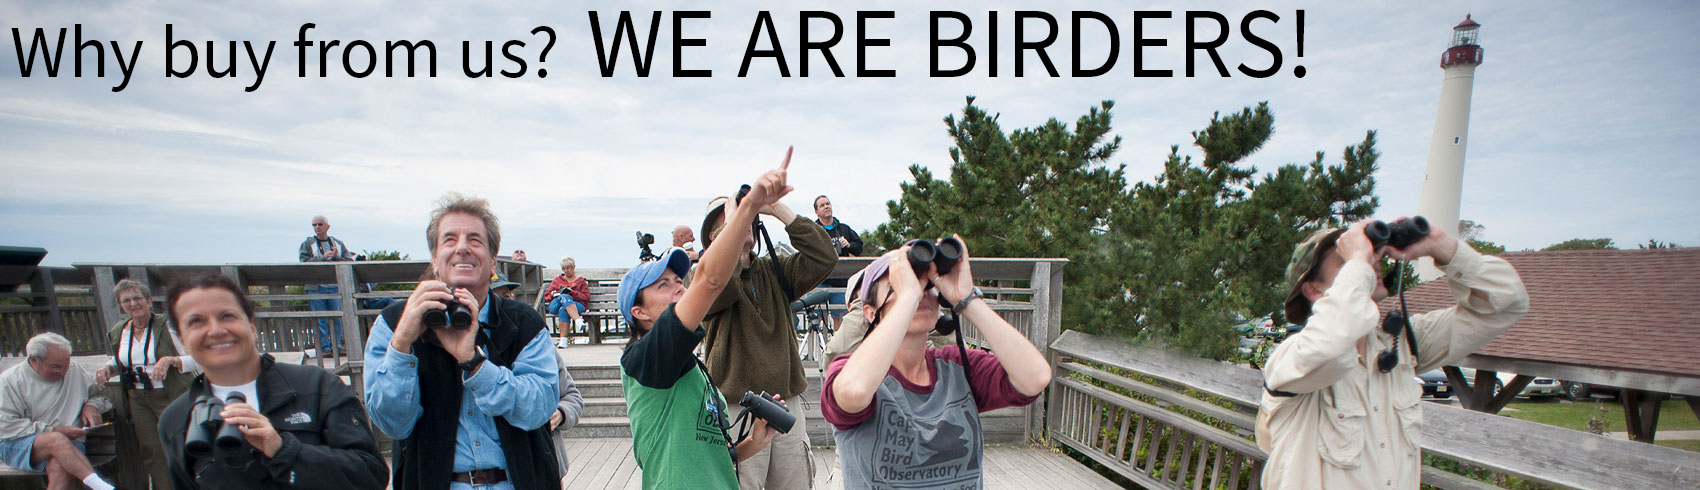 we-are-birders-about-us.jpg